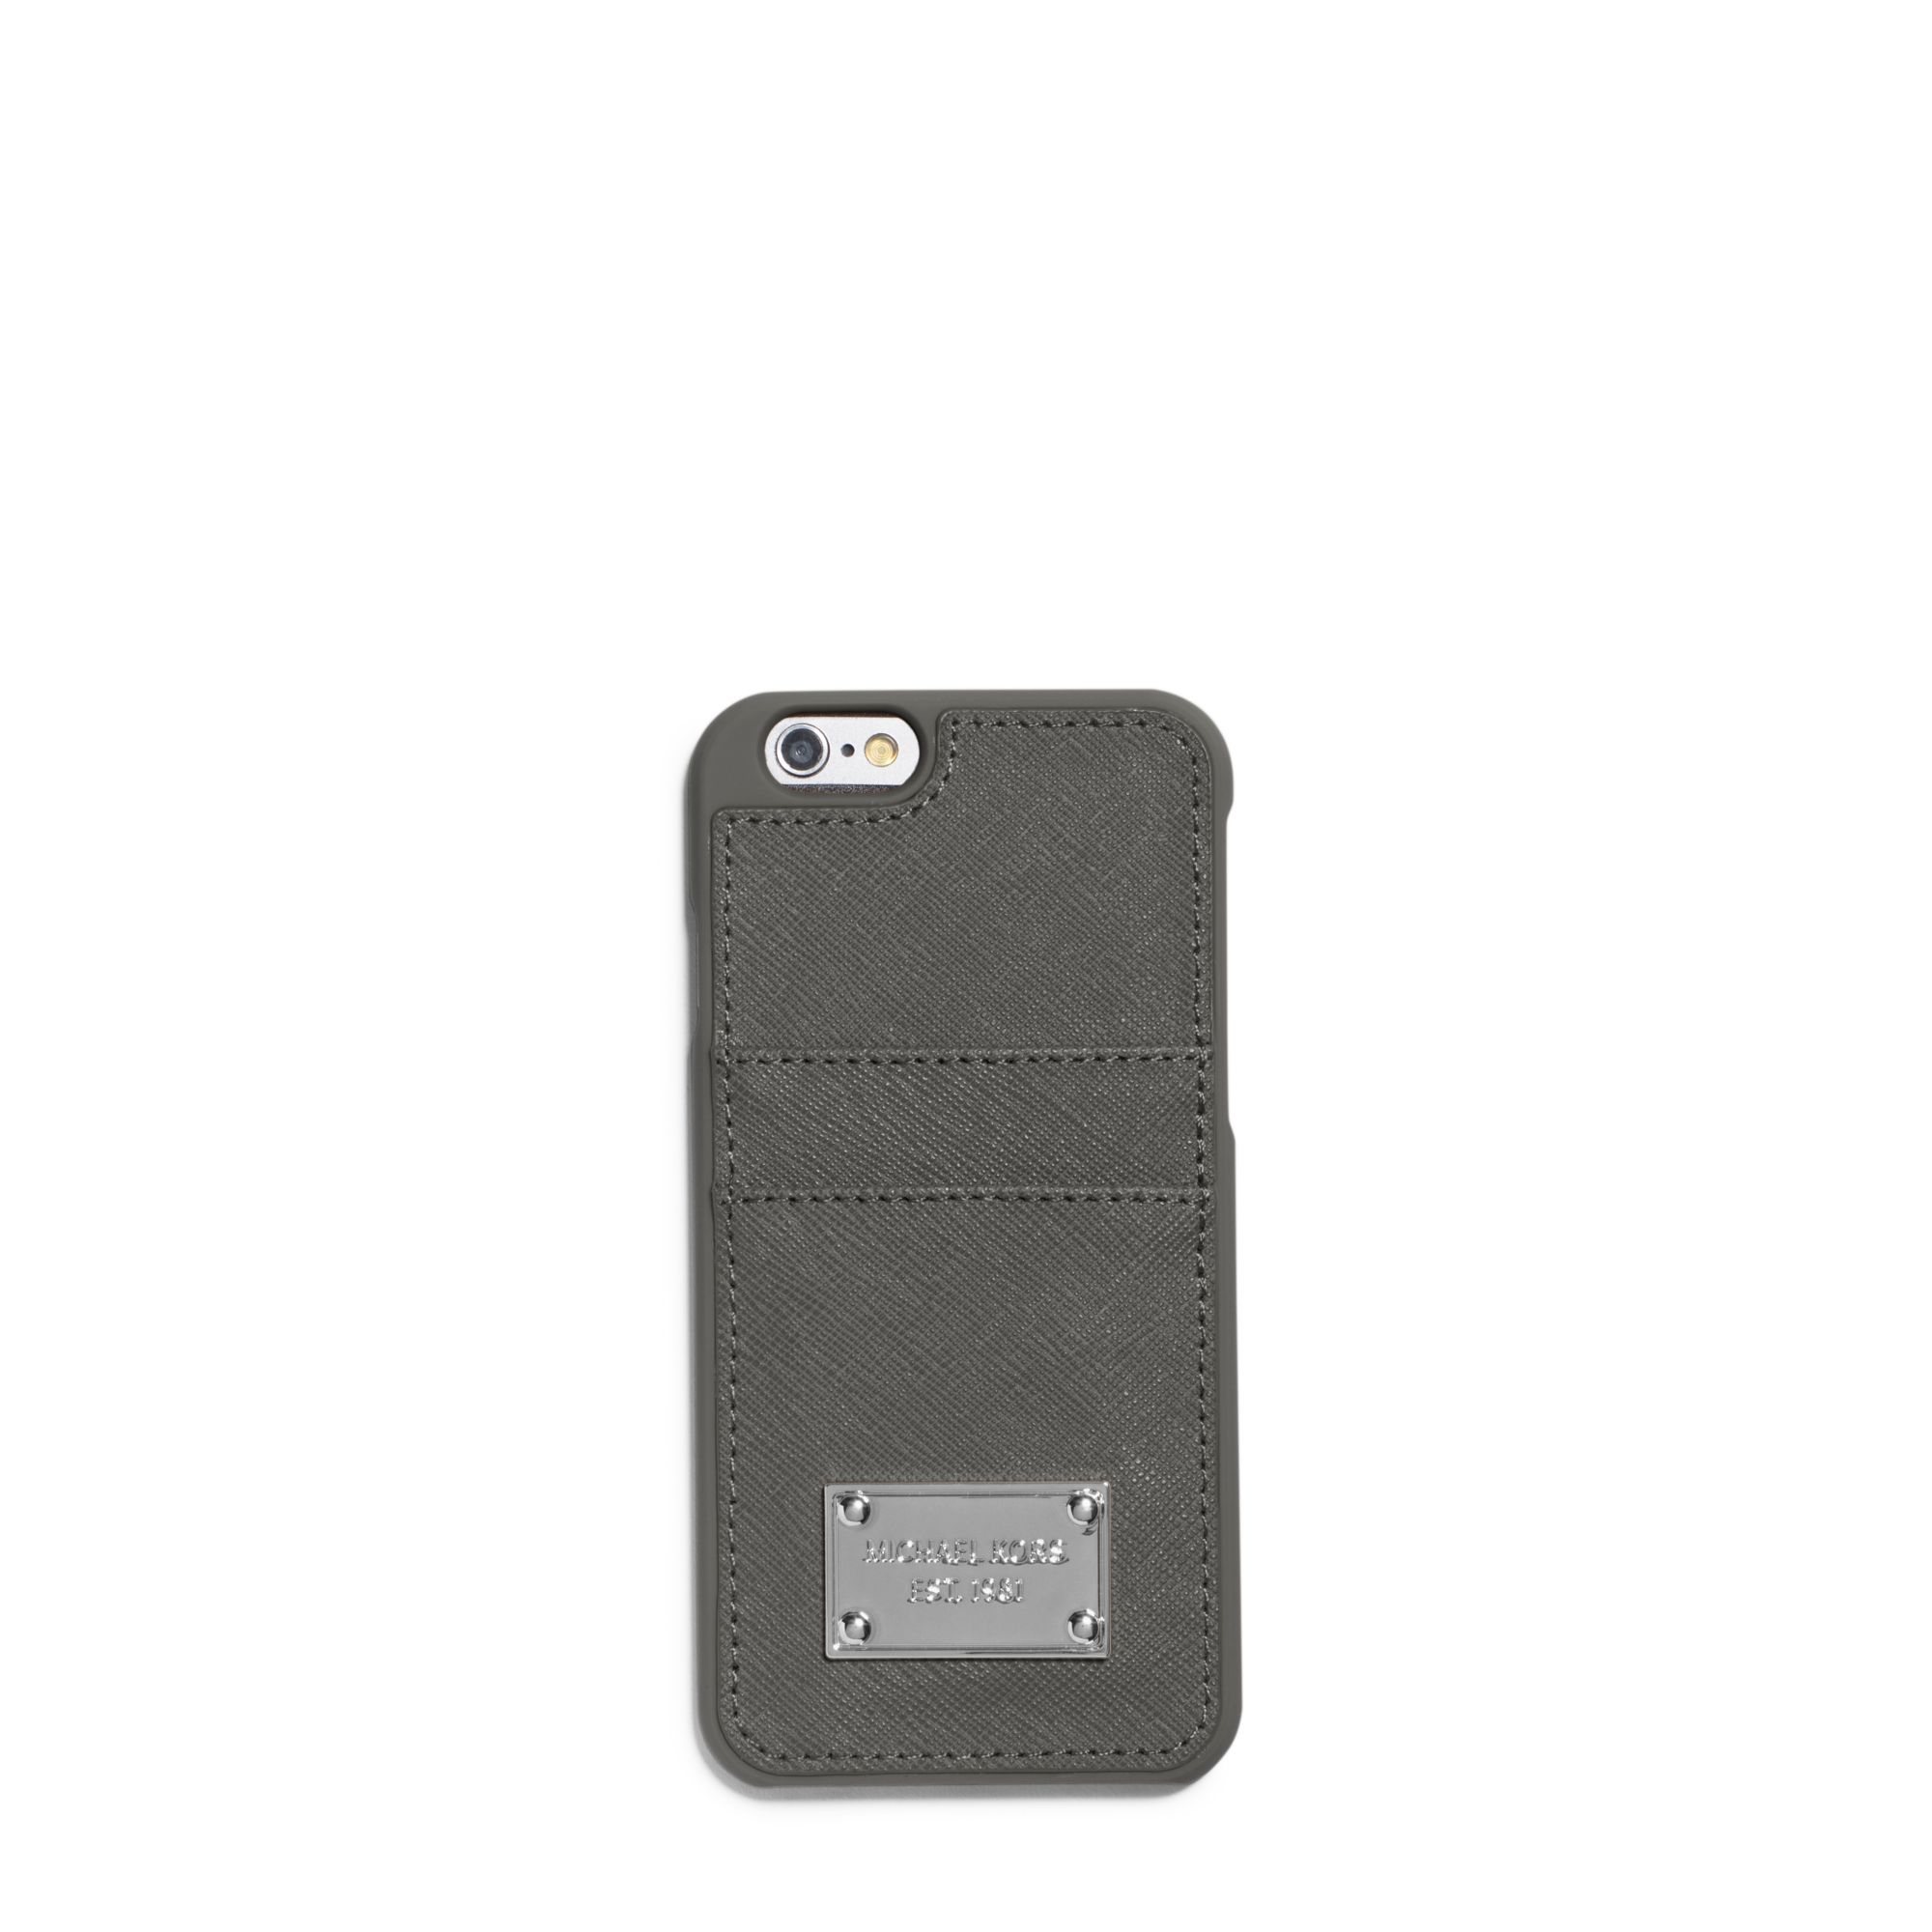 3fd559c4bc9b9 Lyst - Michael Kors Saffiano Leather Pocket Smartphone Case in Gray